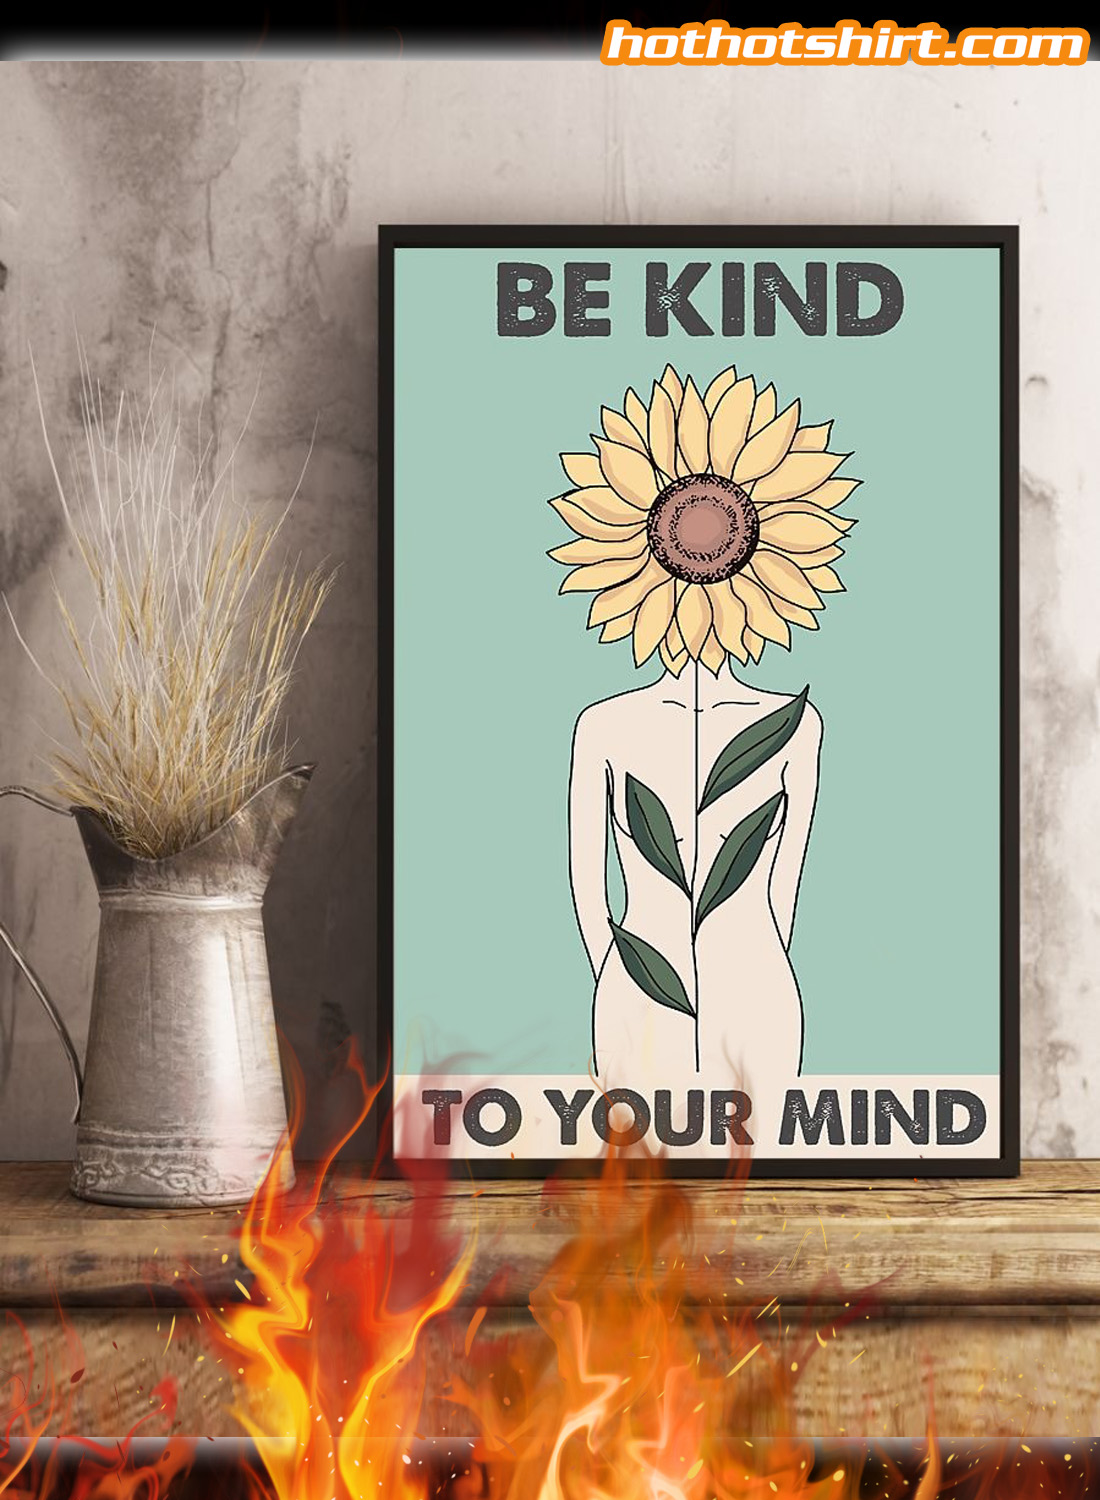 Sunflower Be kind to your mind poster 3